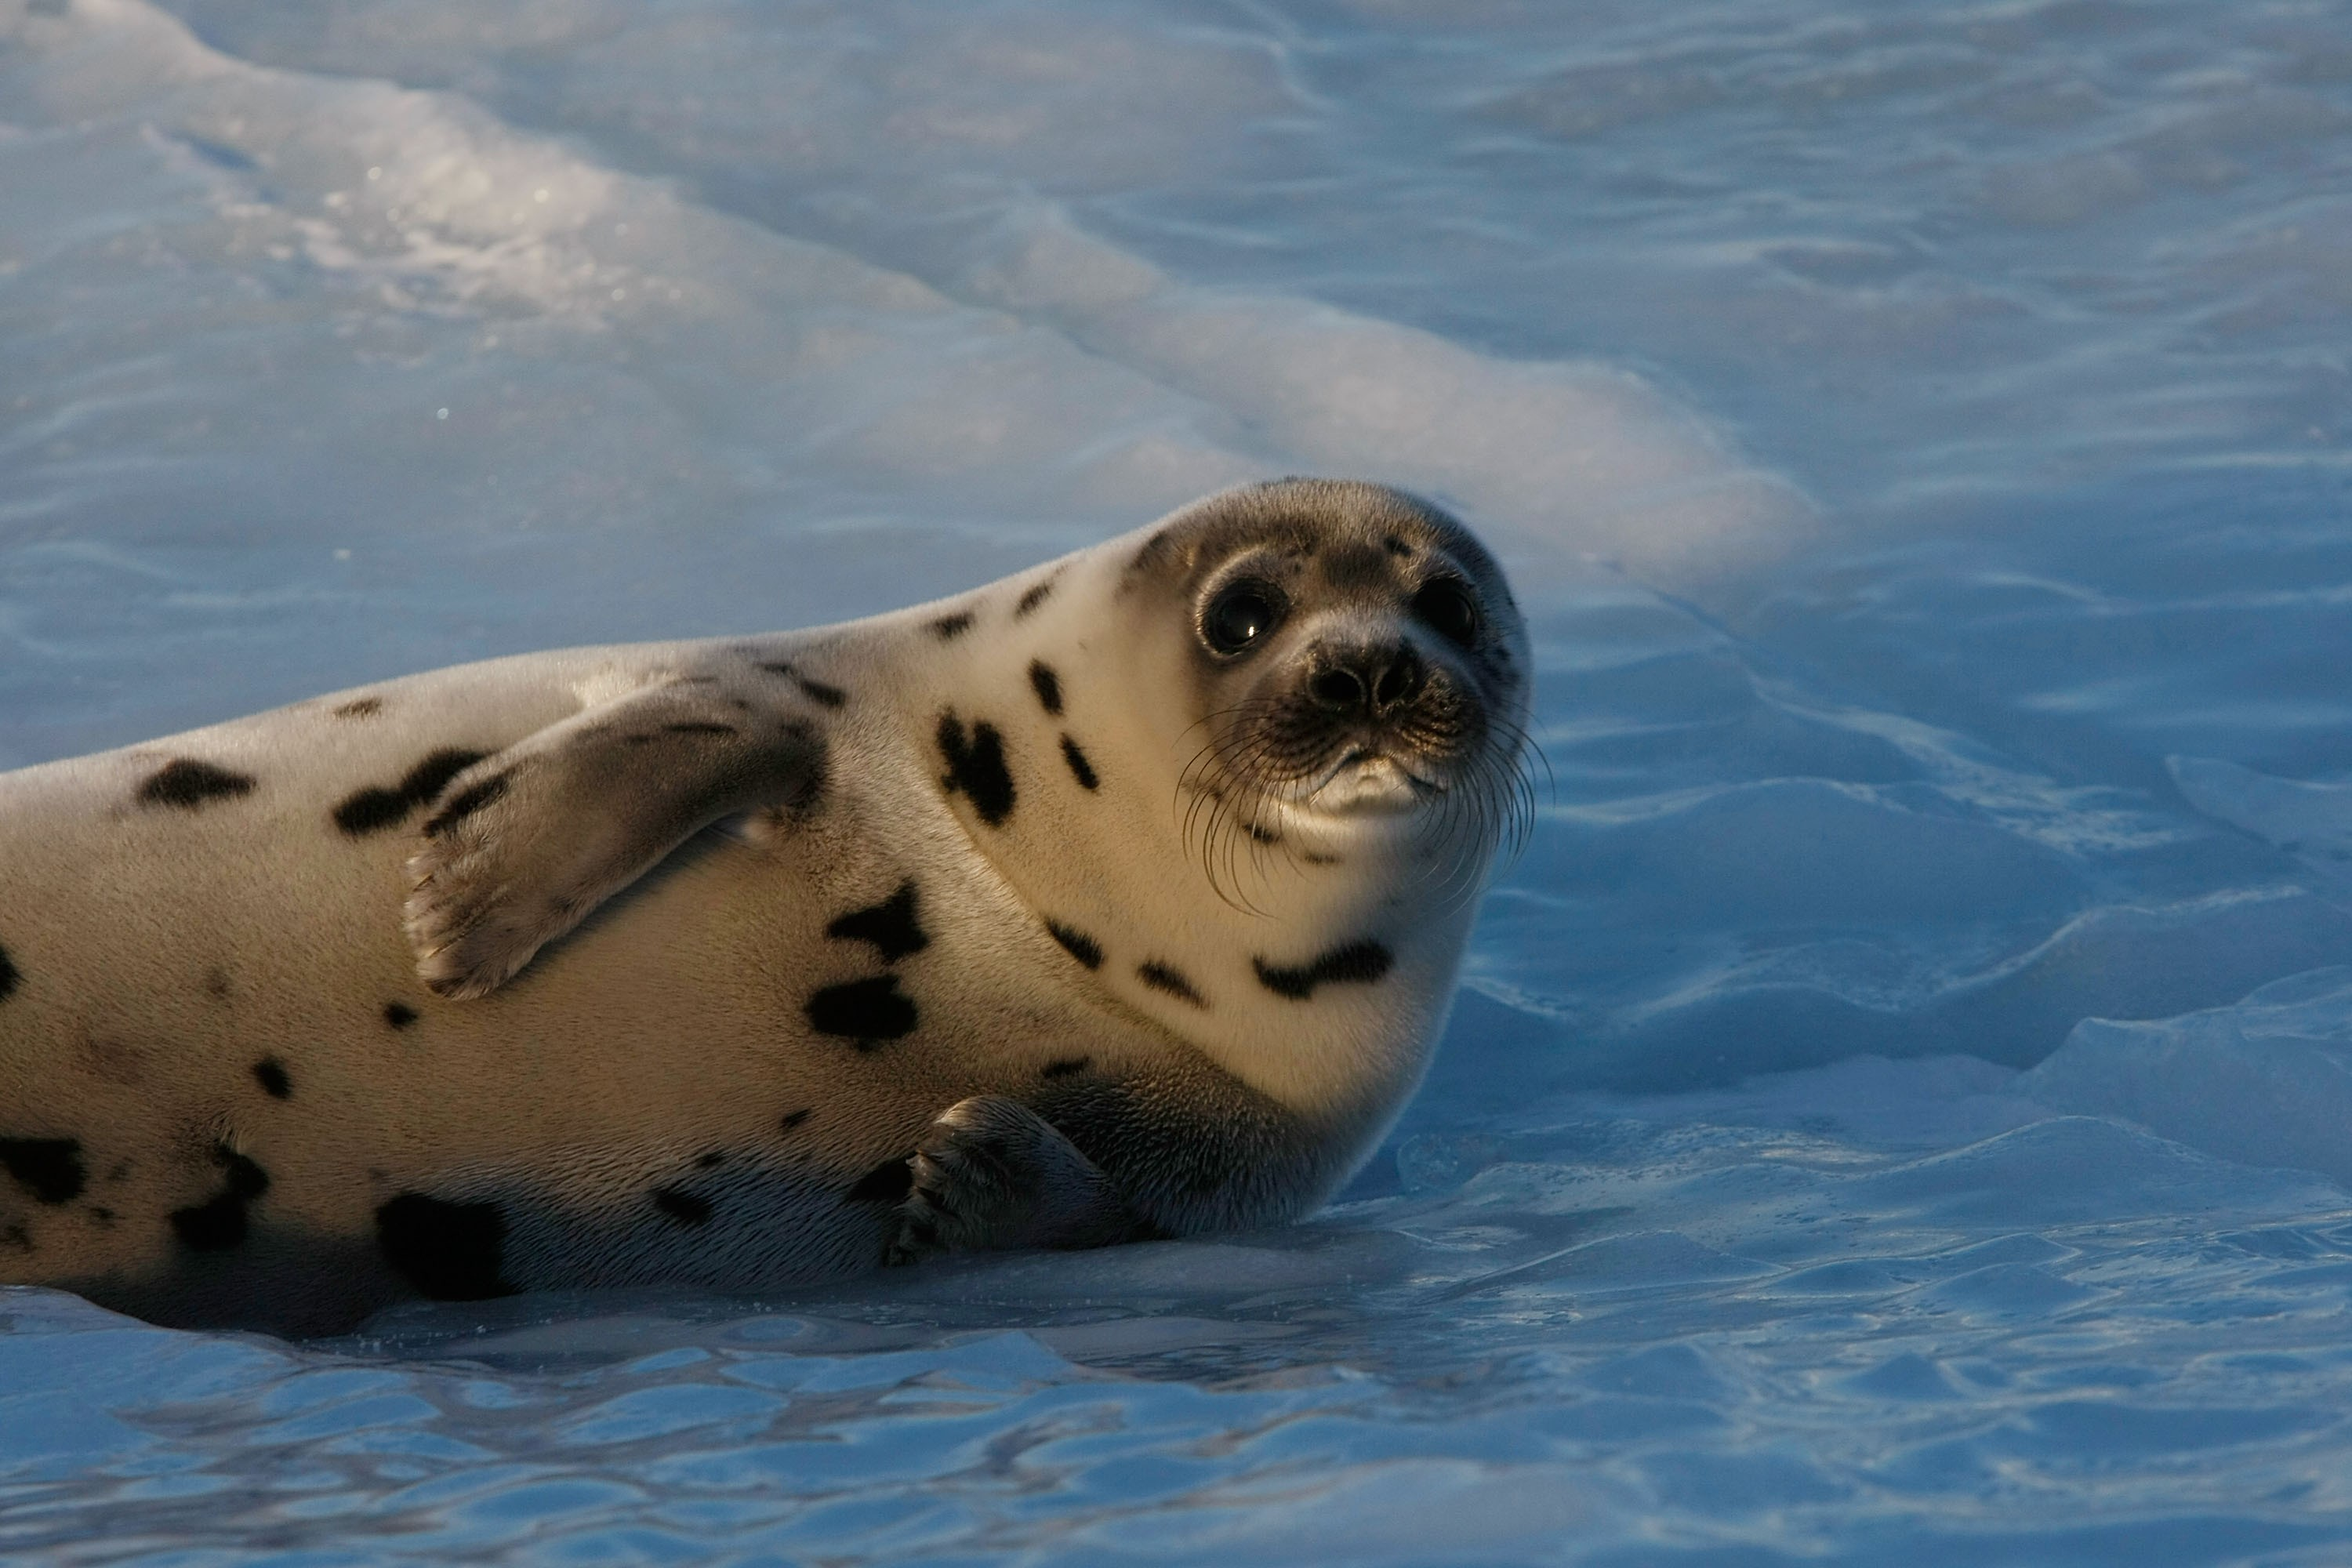 Wallpaper seal pup atlantic ocean snow funny animals 3857 wallpaper seal pup atlantic ocean snow funny animals 3857 hd wallpapers shouldnt be just a picture it should be a philosophy sciox Choice Image